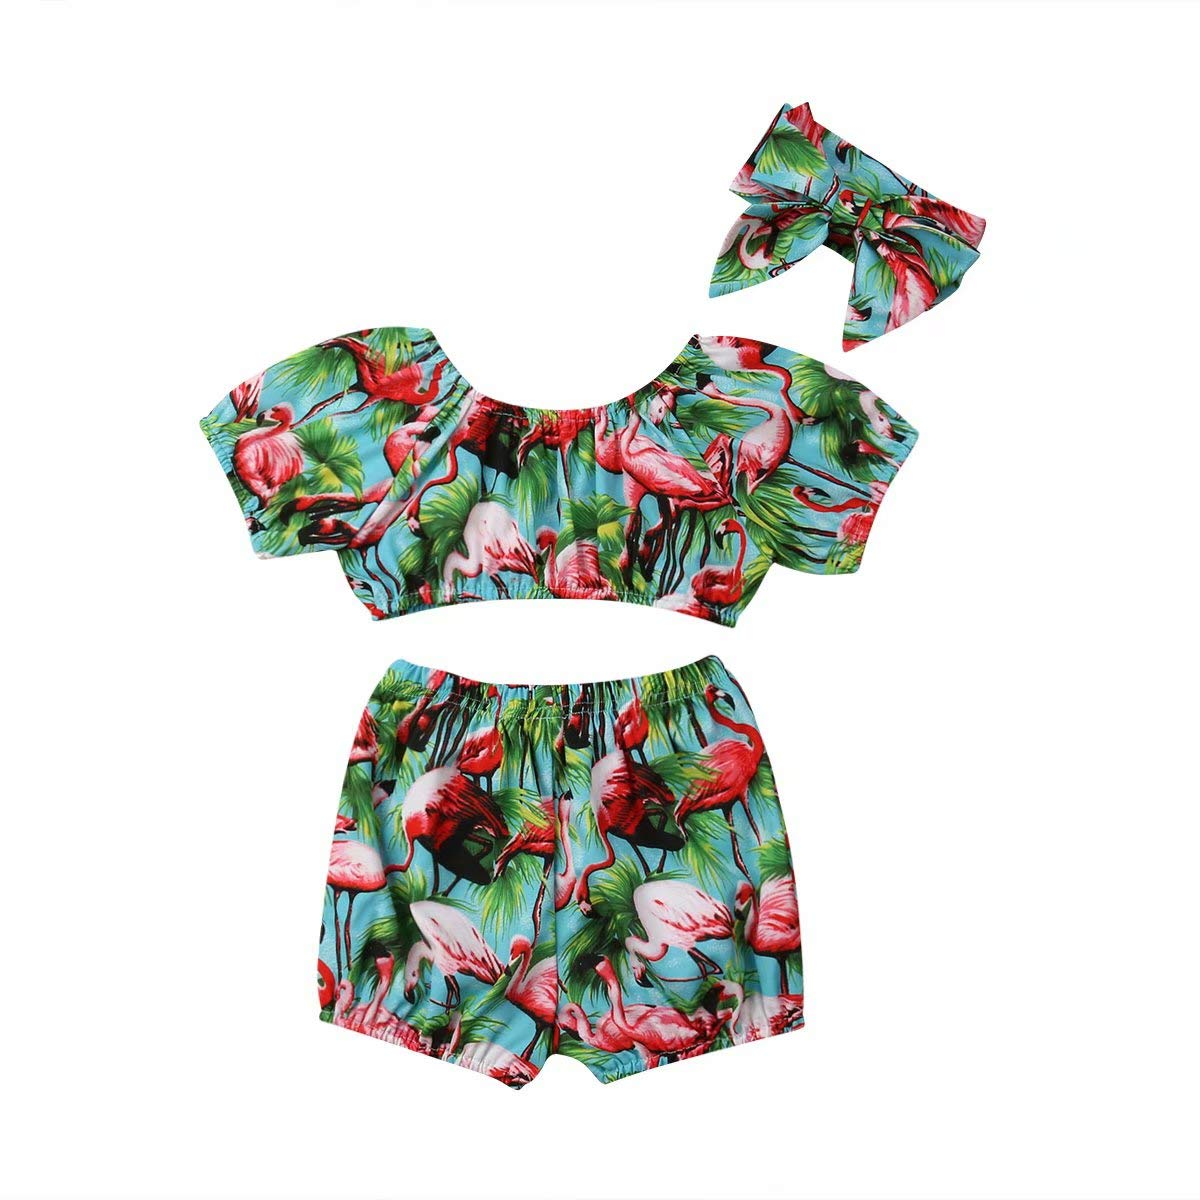 Kids Infant Baby Girls Summer 3Pcs Outfit Flamingo Printed Off Shoulder Crop Tops High Waist Shorts Headband Clothes Set